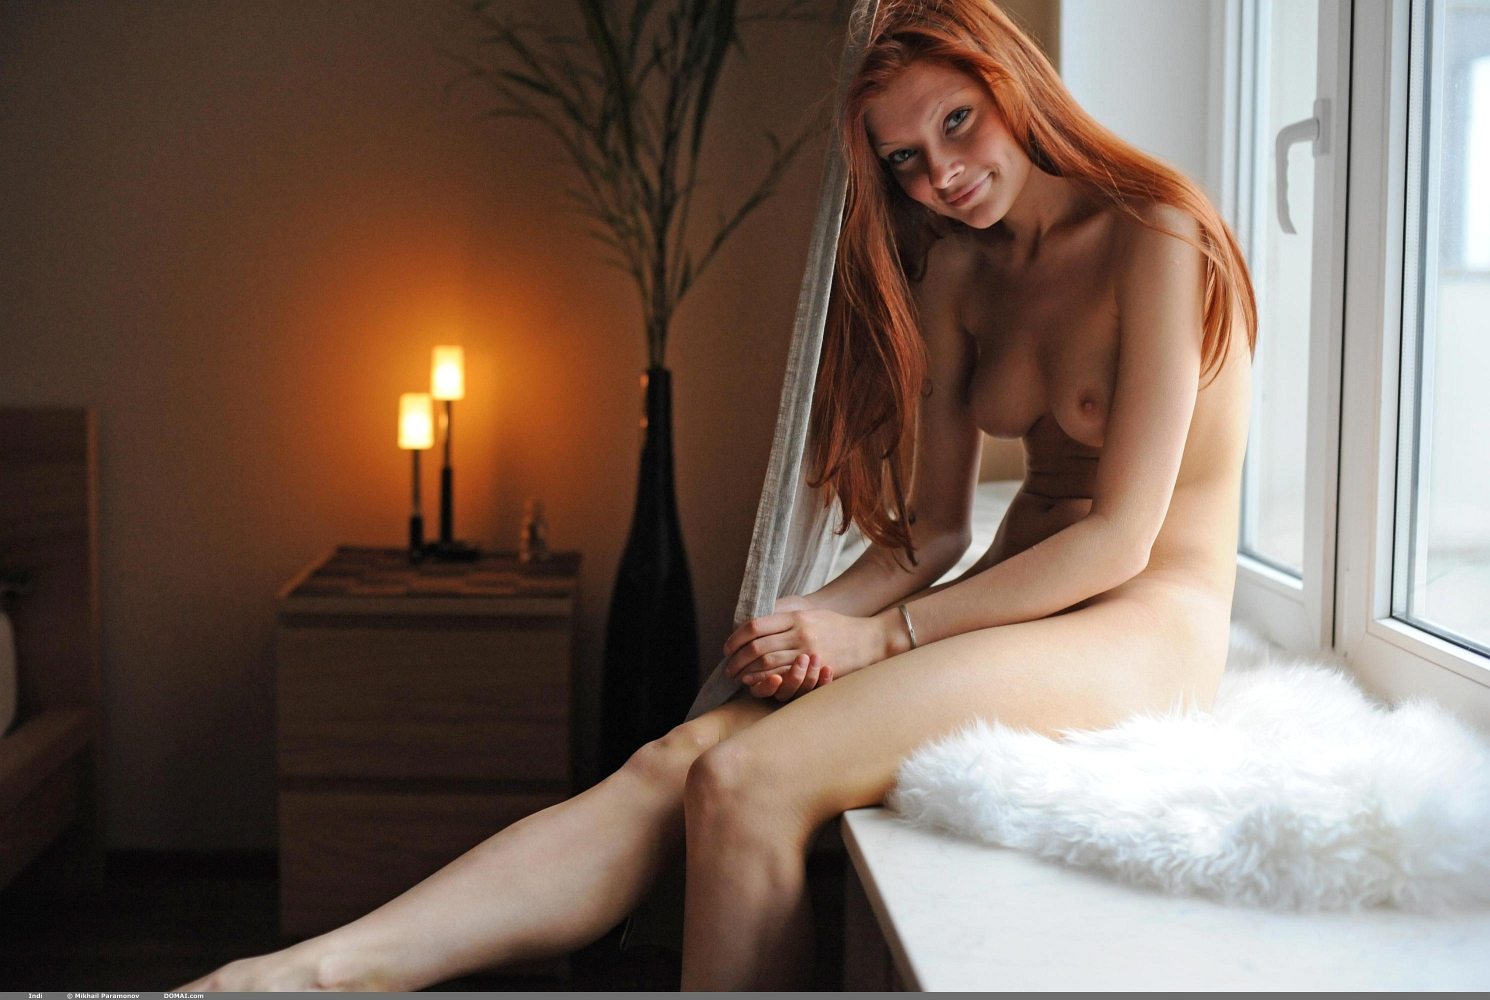 Erotikom.com and DOMAI Simple Nudes present the Redhead Tenderness of Indi and her astounding, angelical Beauty photographed by Mikhail Paramonov. Get the original full size HD quality photo collection Only at DOMAI!